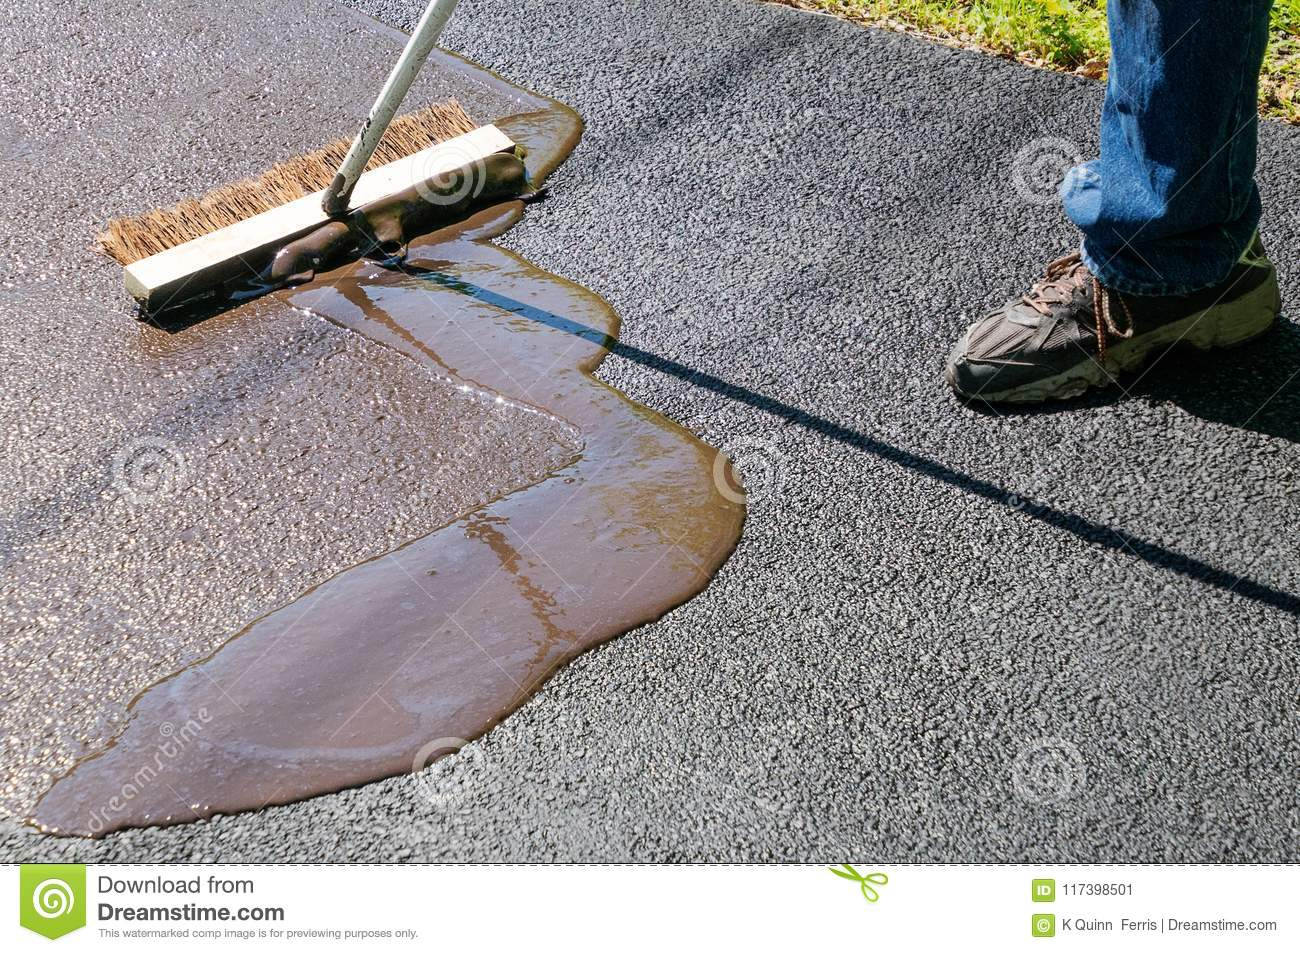 Driveway maintenance spreading sealant stock image image of work download driveway maintenance spreading sealant stock image image of work home 117398501 solutioingenieria